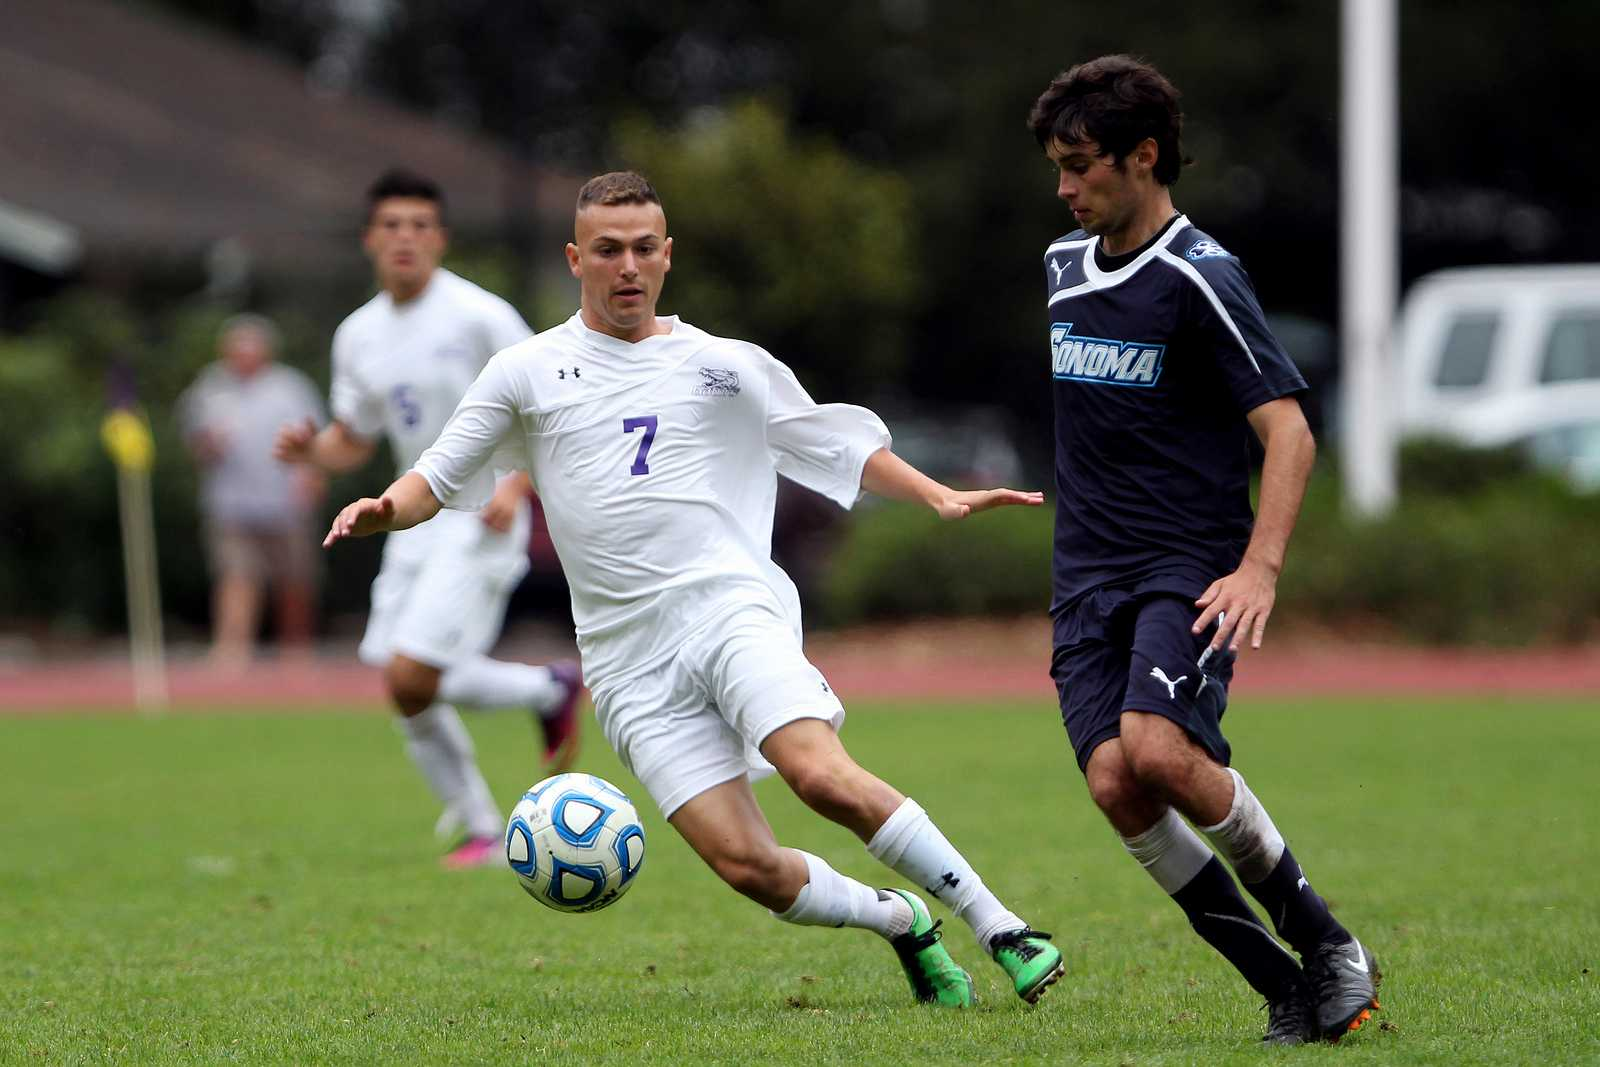 Cole Dimond (7) (left) kicks the ball past Sean Callahan(8) during a game between the SF State Gators and the Sonoma State University Seawolves at Cox Stadium on Sept.13, 2013. The Gators lost in a hard fought battle against the Seawolves, losing 0-1. Photo by Gavin McIntyre / Xpress